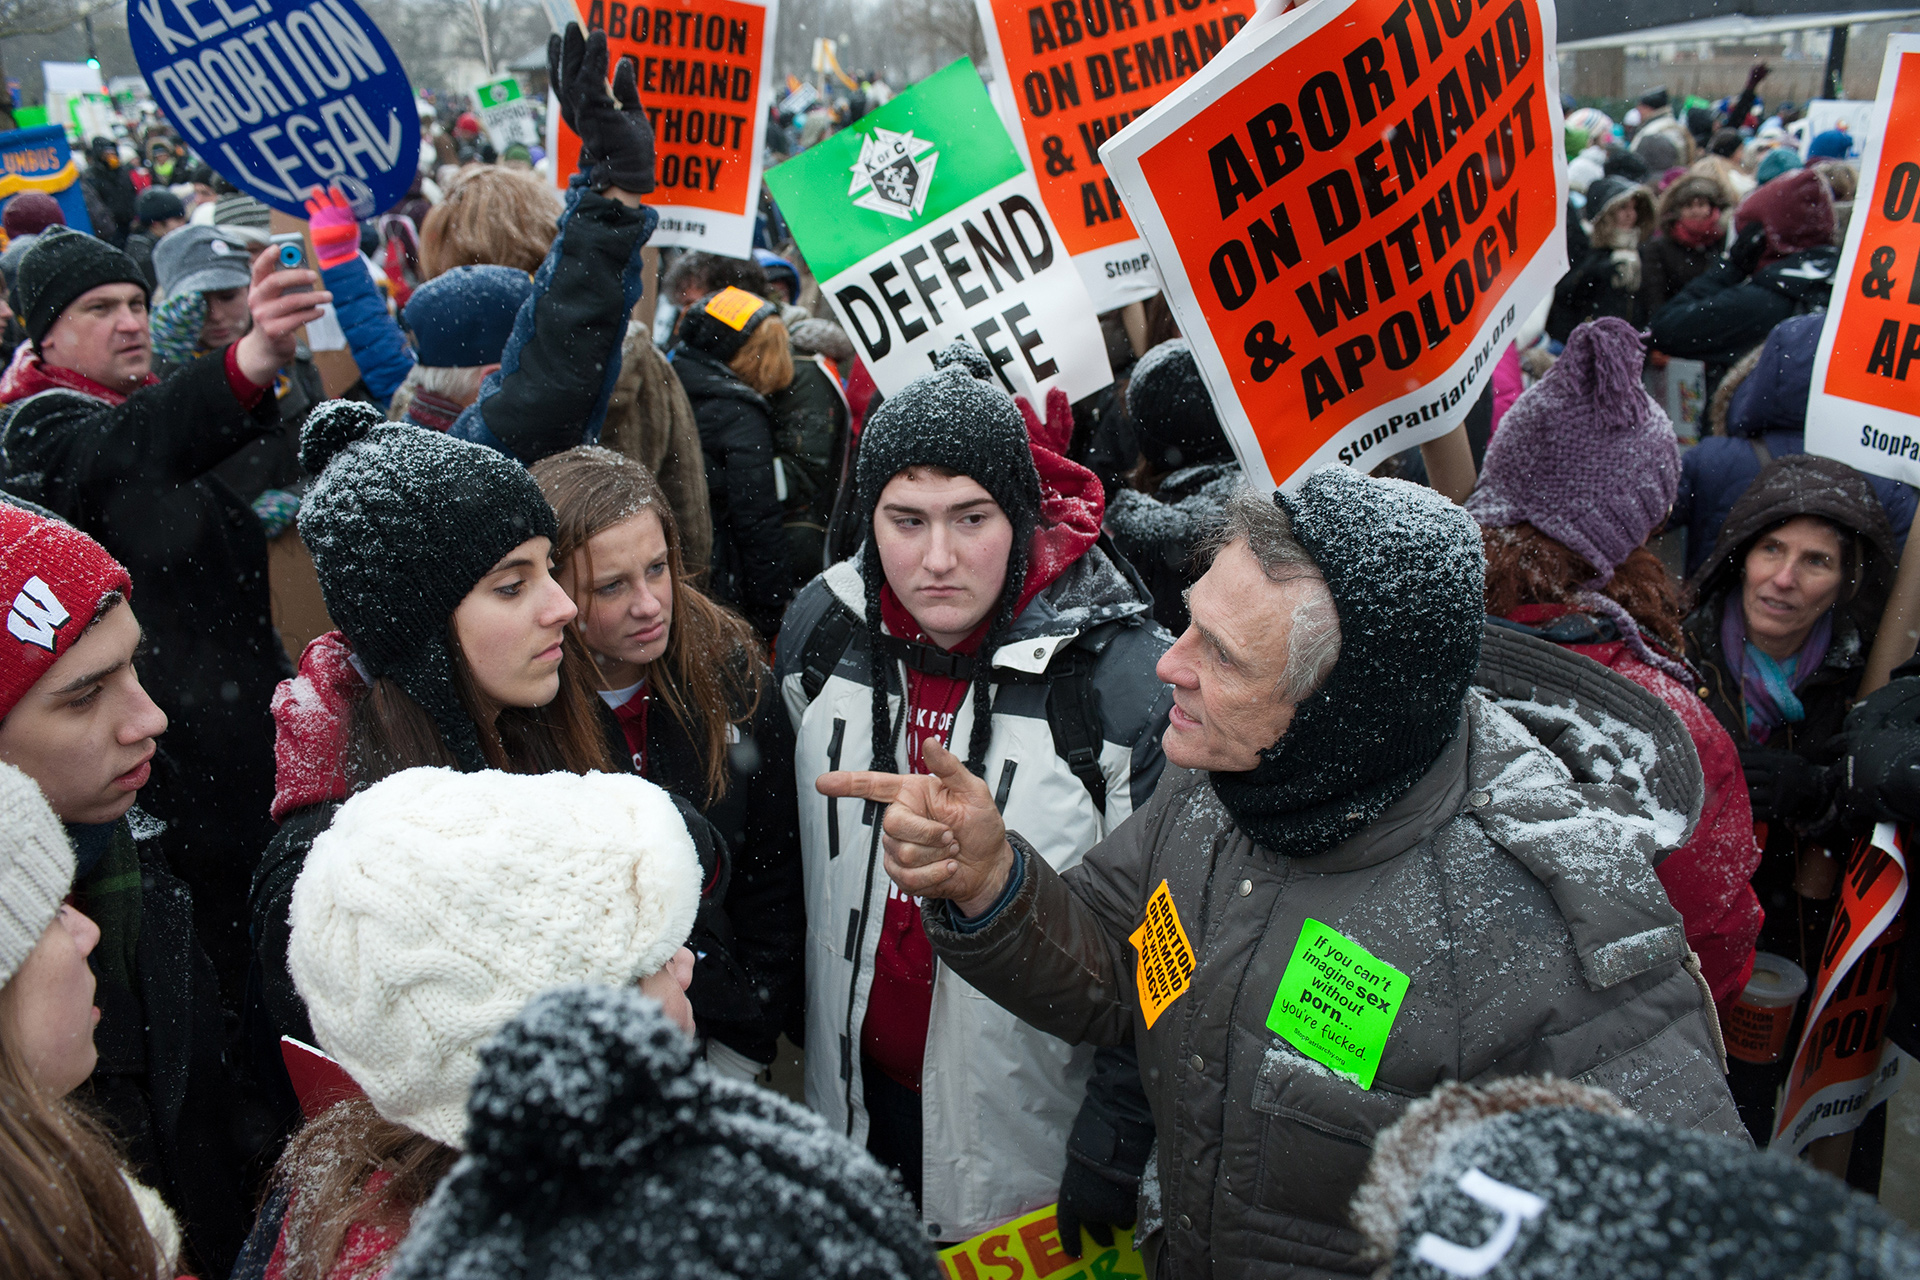 March for Life anti-abortion rally at the U.S. Supreme Court, 2013